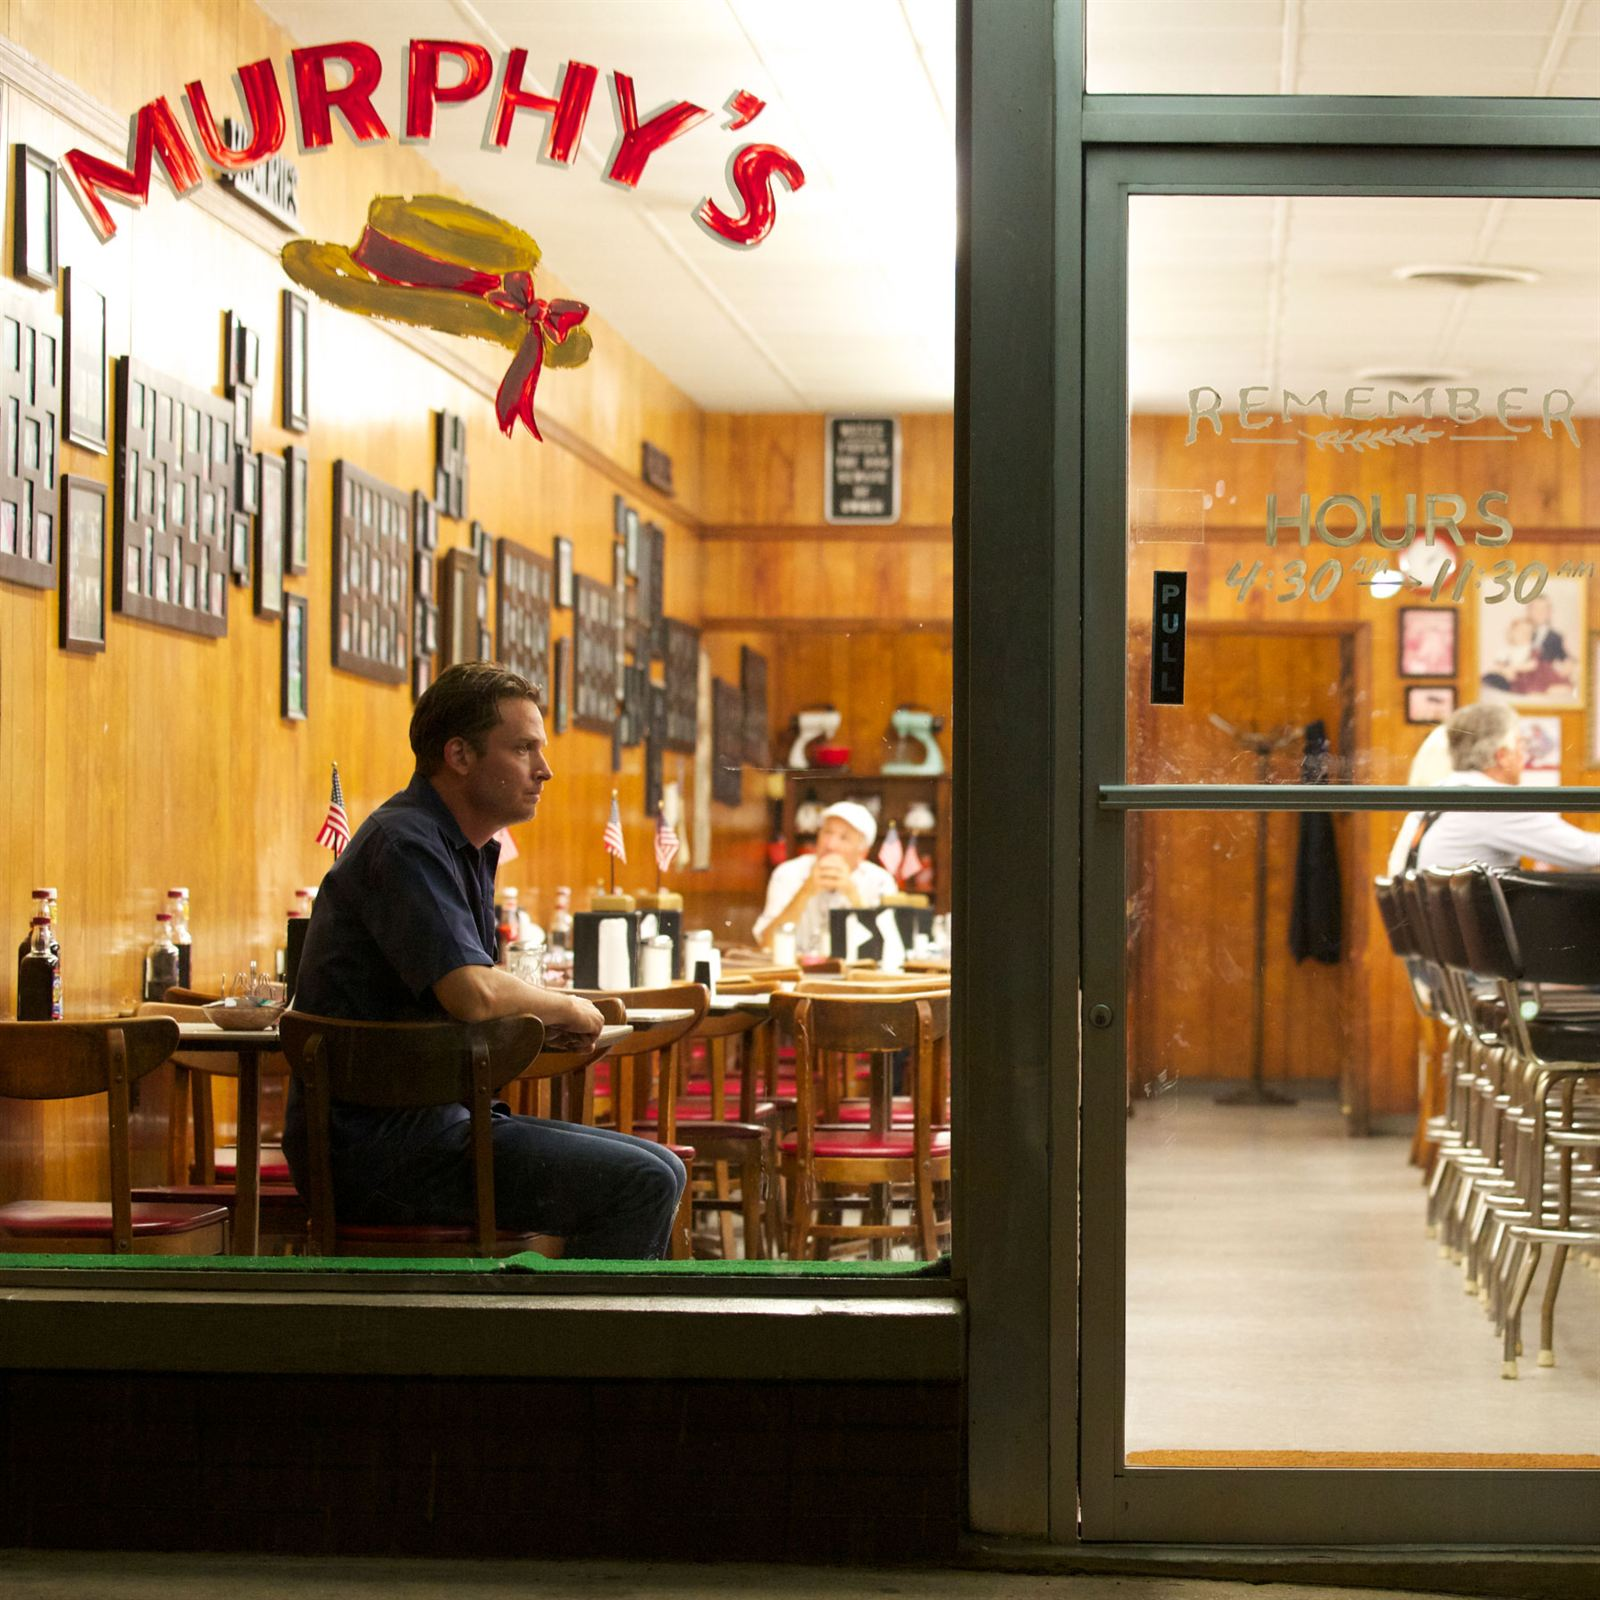 It Was Perfect I Don T Think An Art Director Could Have Even Done Such A Great Job Mckinnon Says Rectify Murphy S Restaurant Frequented By Characters